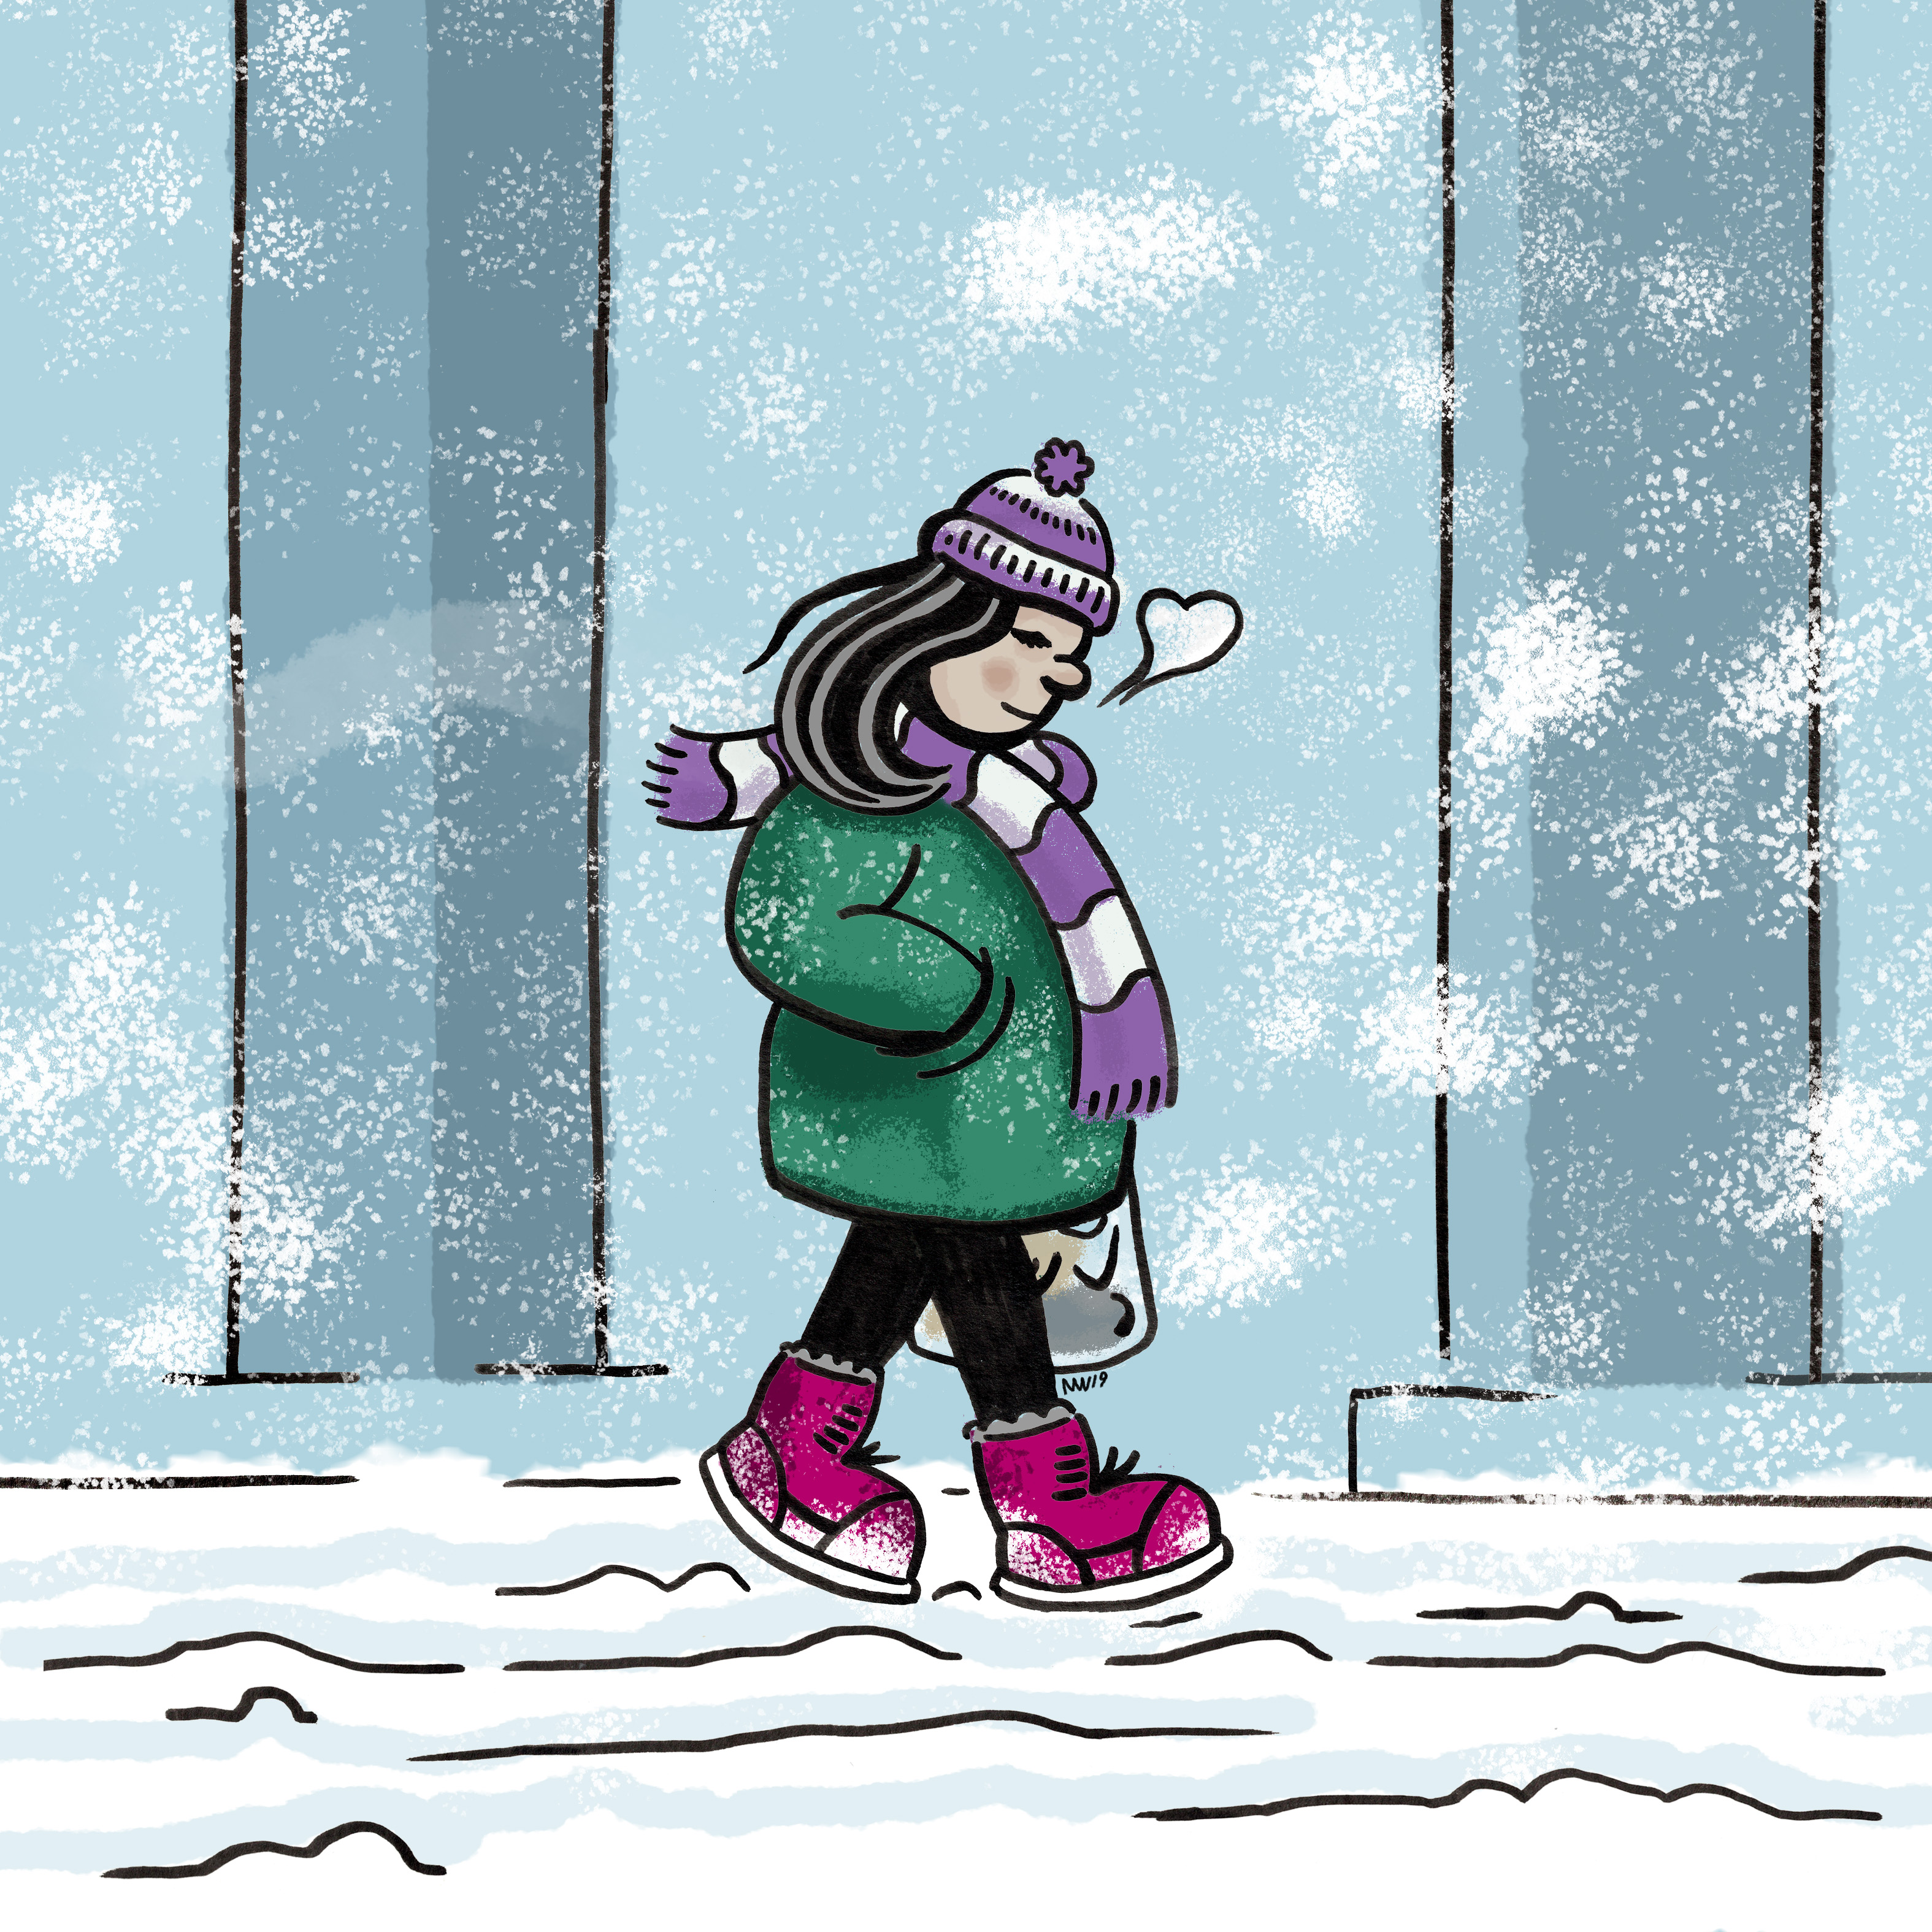 From The Editors: Cold Air, Warm Hearts